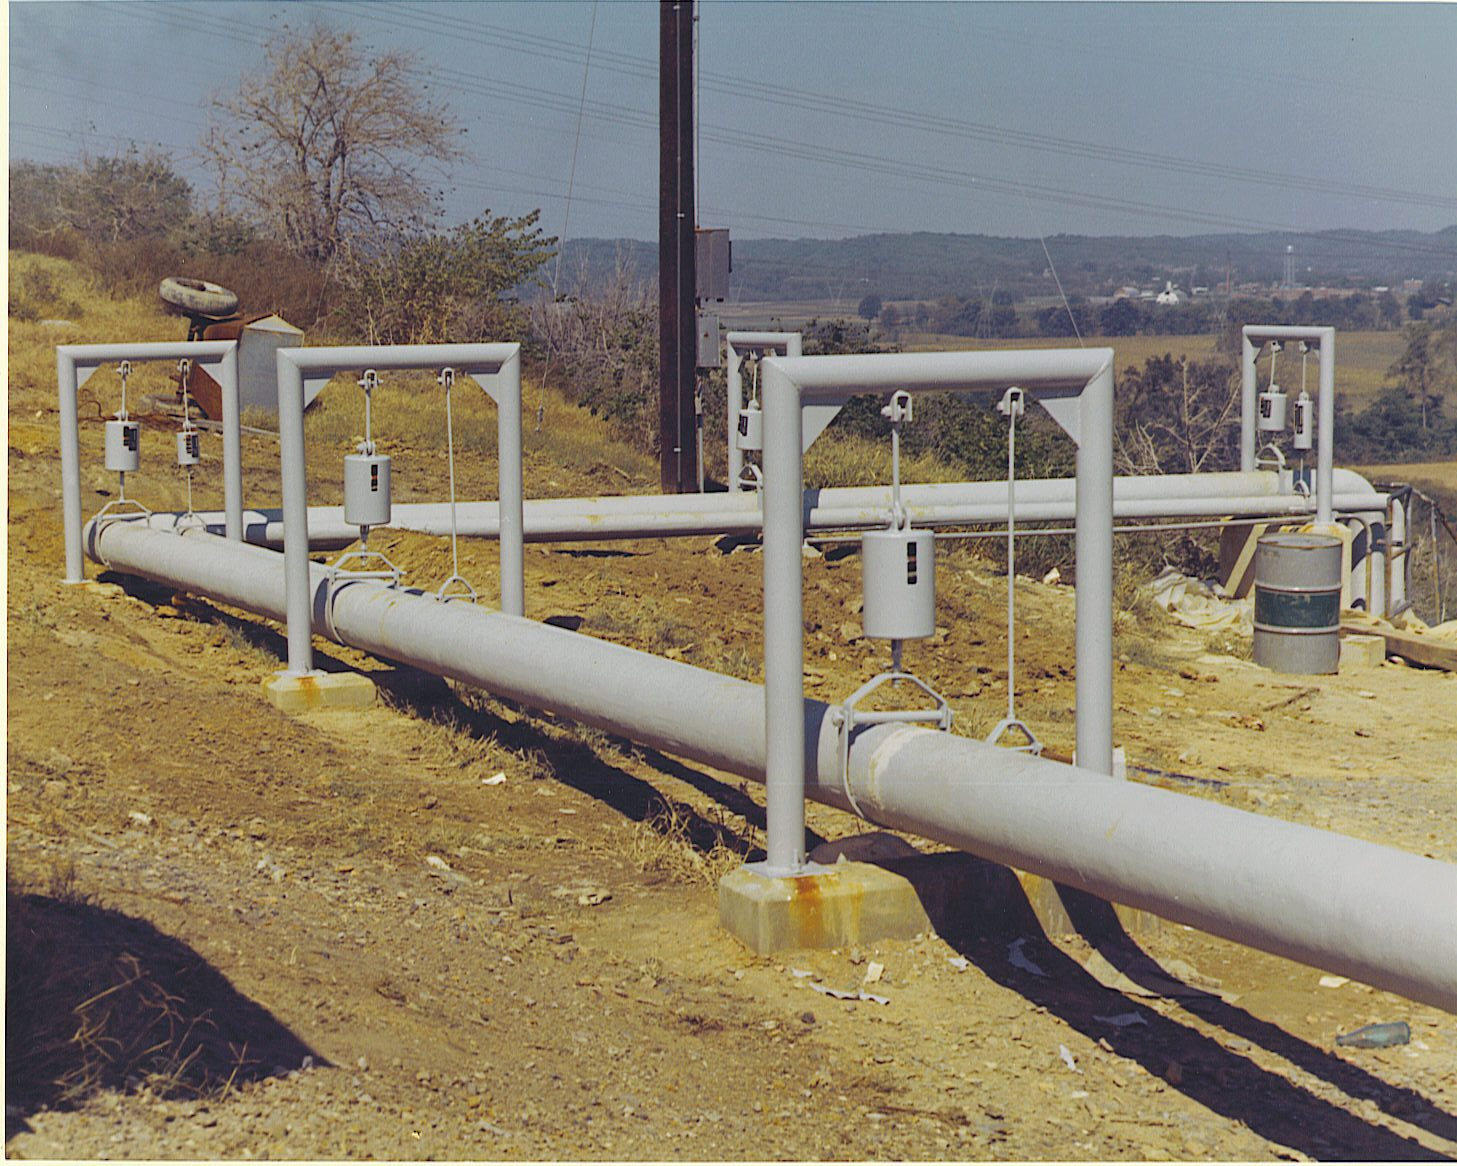 Insulated pipes outside